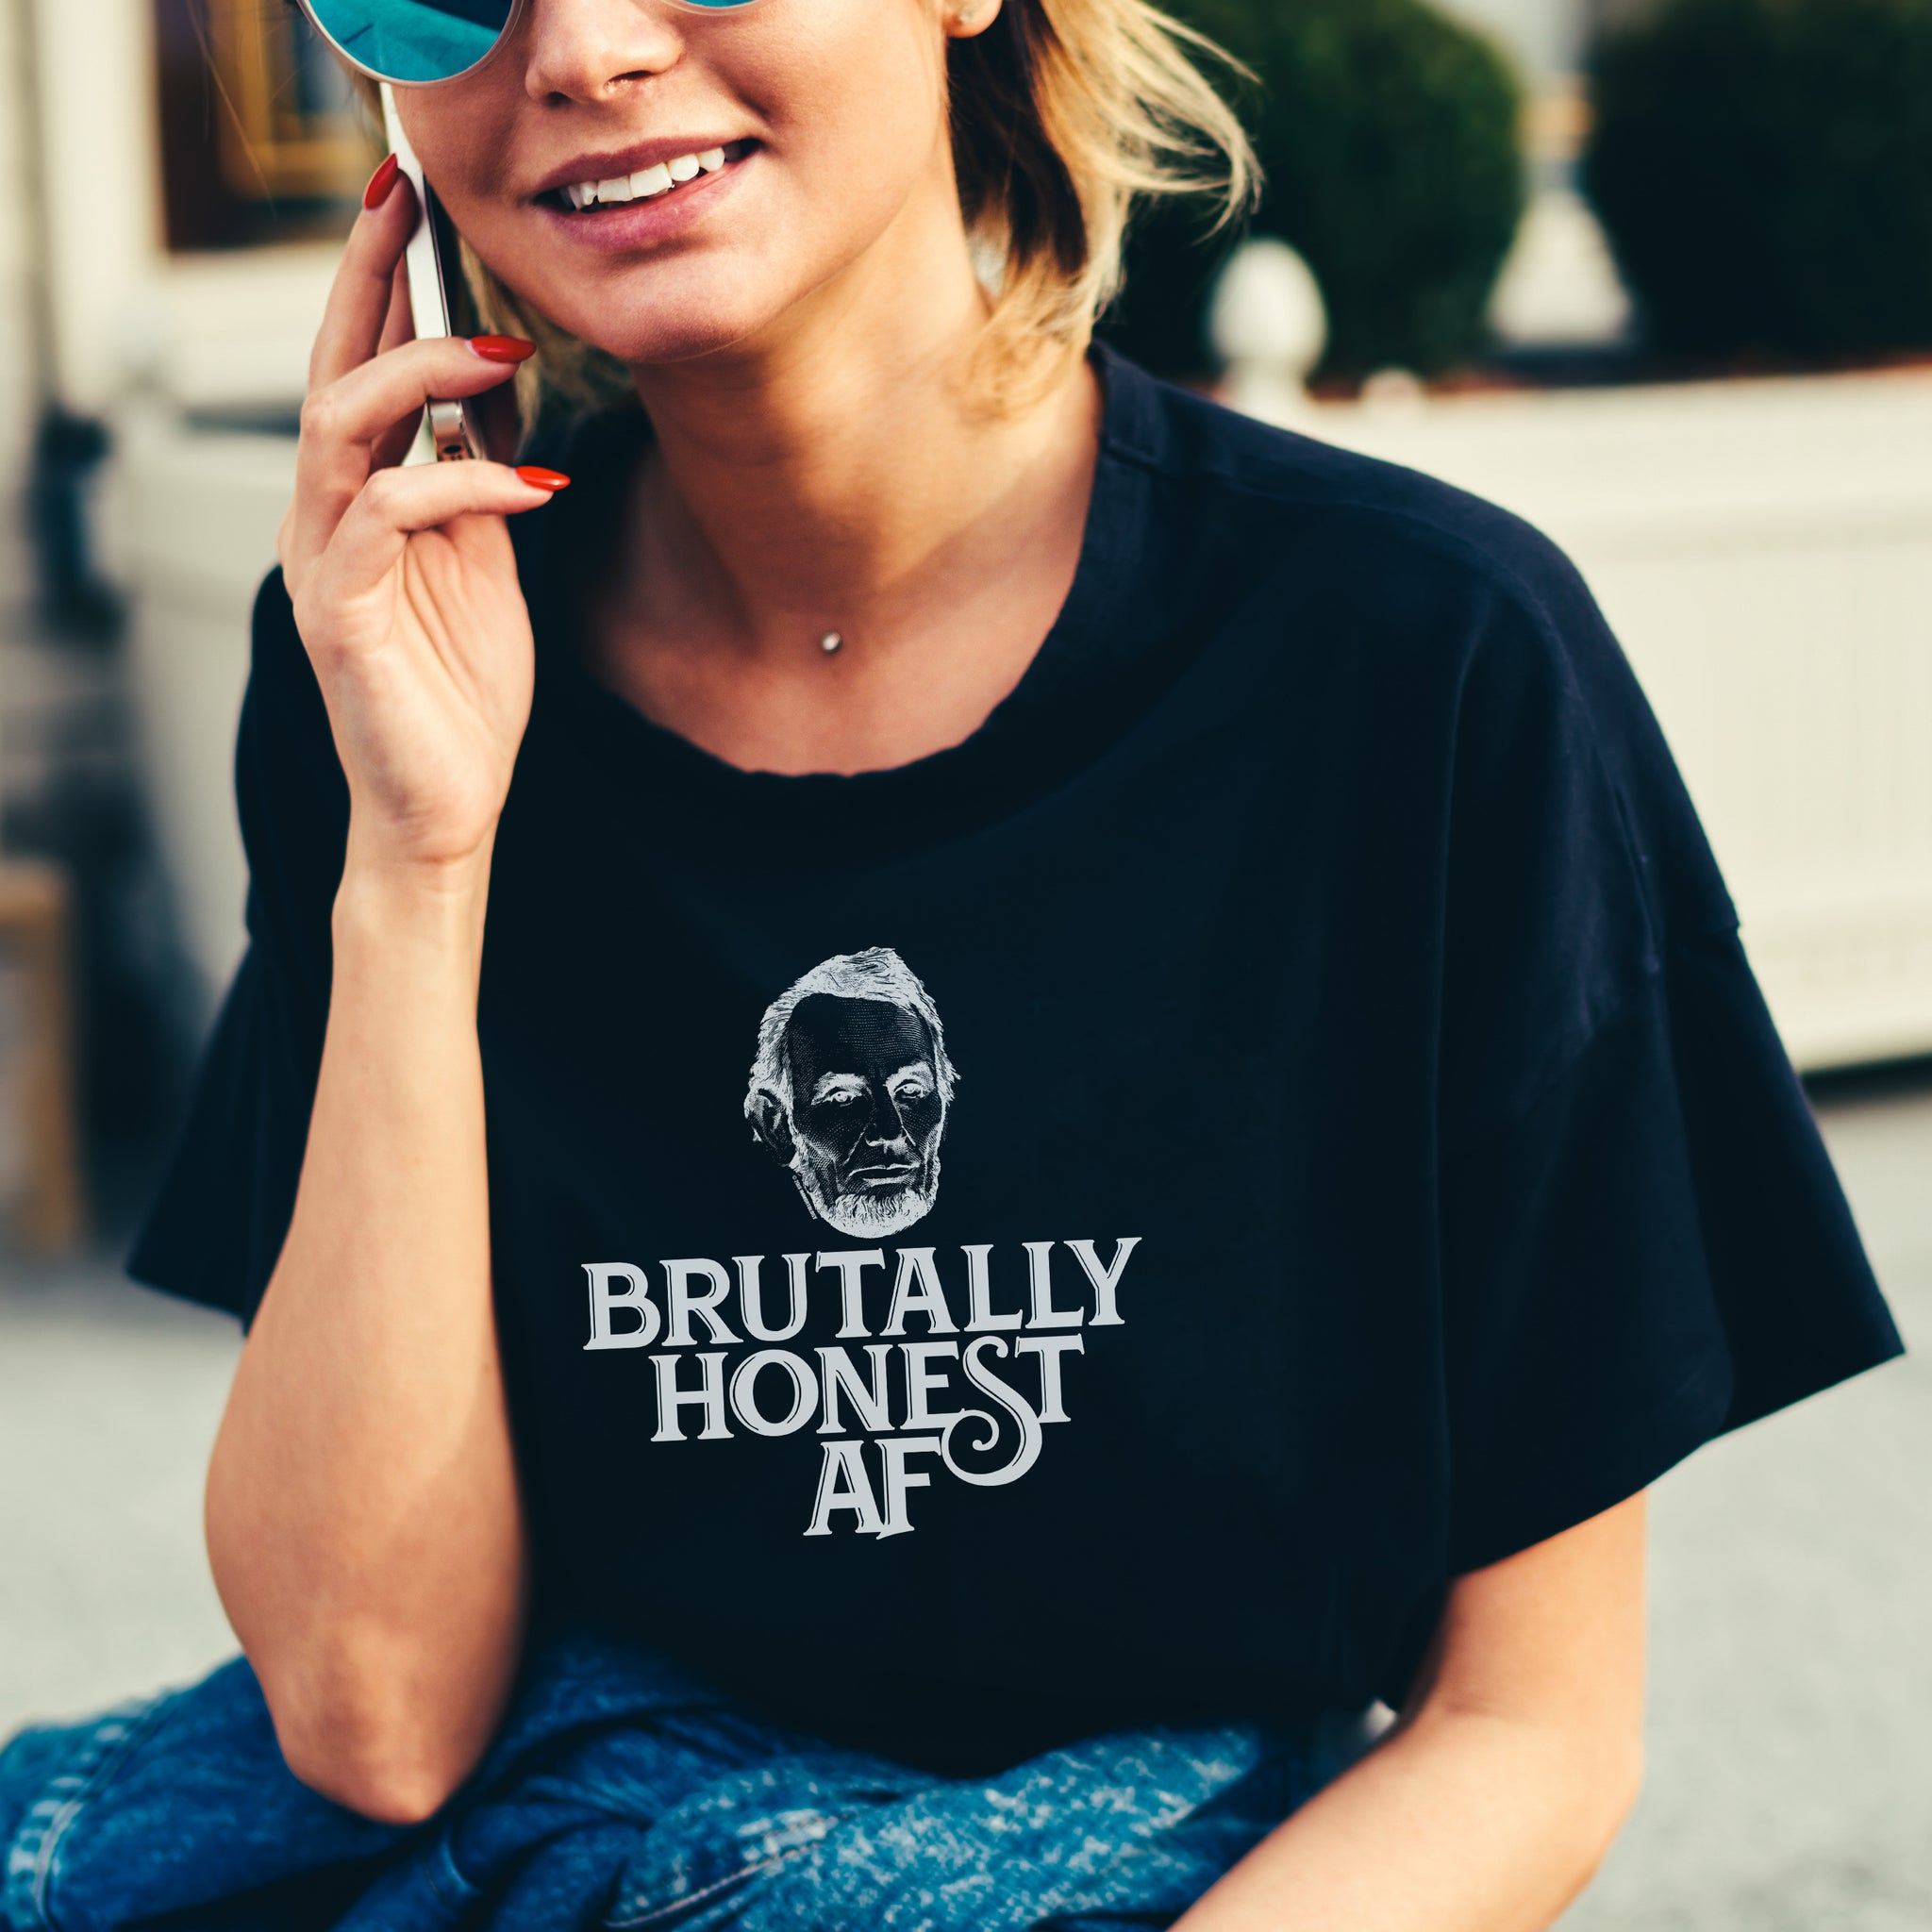 Brutally Honest AF t-shirt, birthday, Christmas, Father's Day, Mother's Day, gift